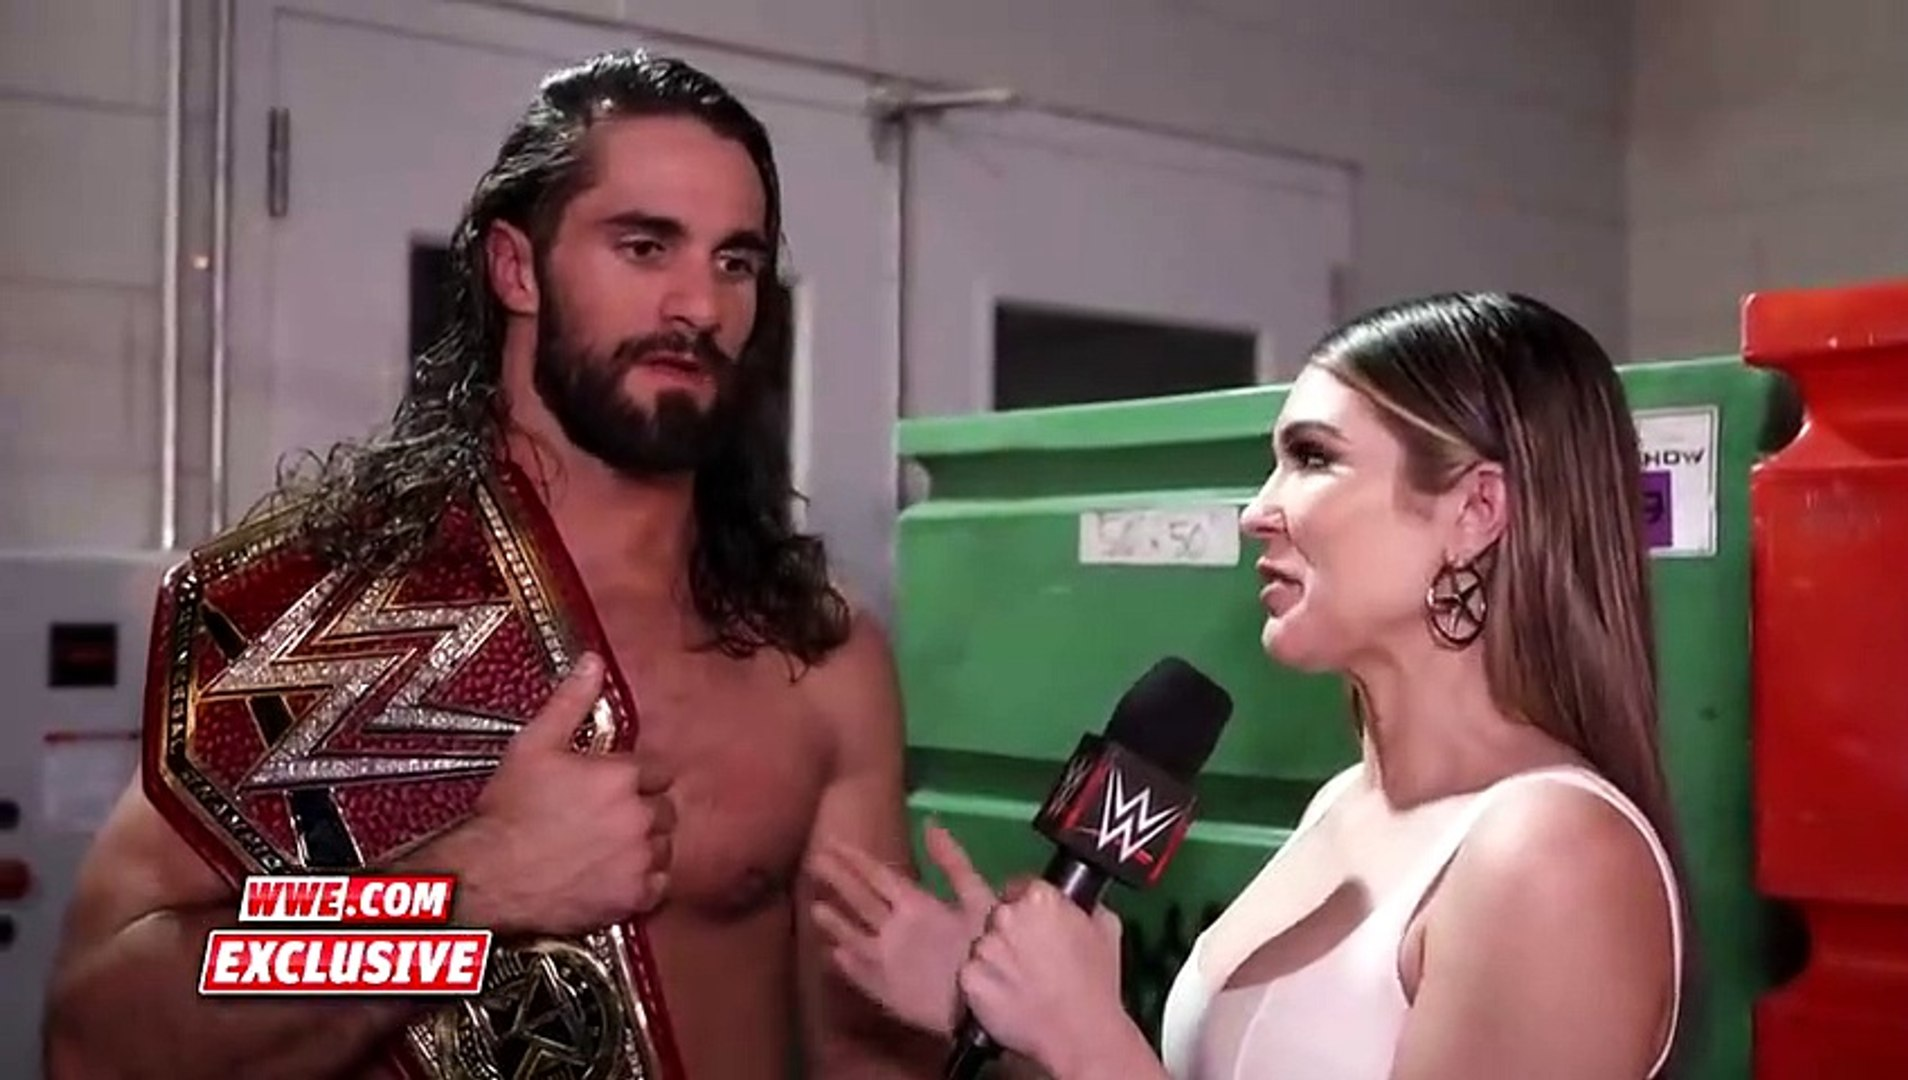 Part 9 Seth Rollins promises to be a fighting Universal Champion WWE Exclusive, April 7, 2019